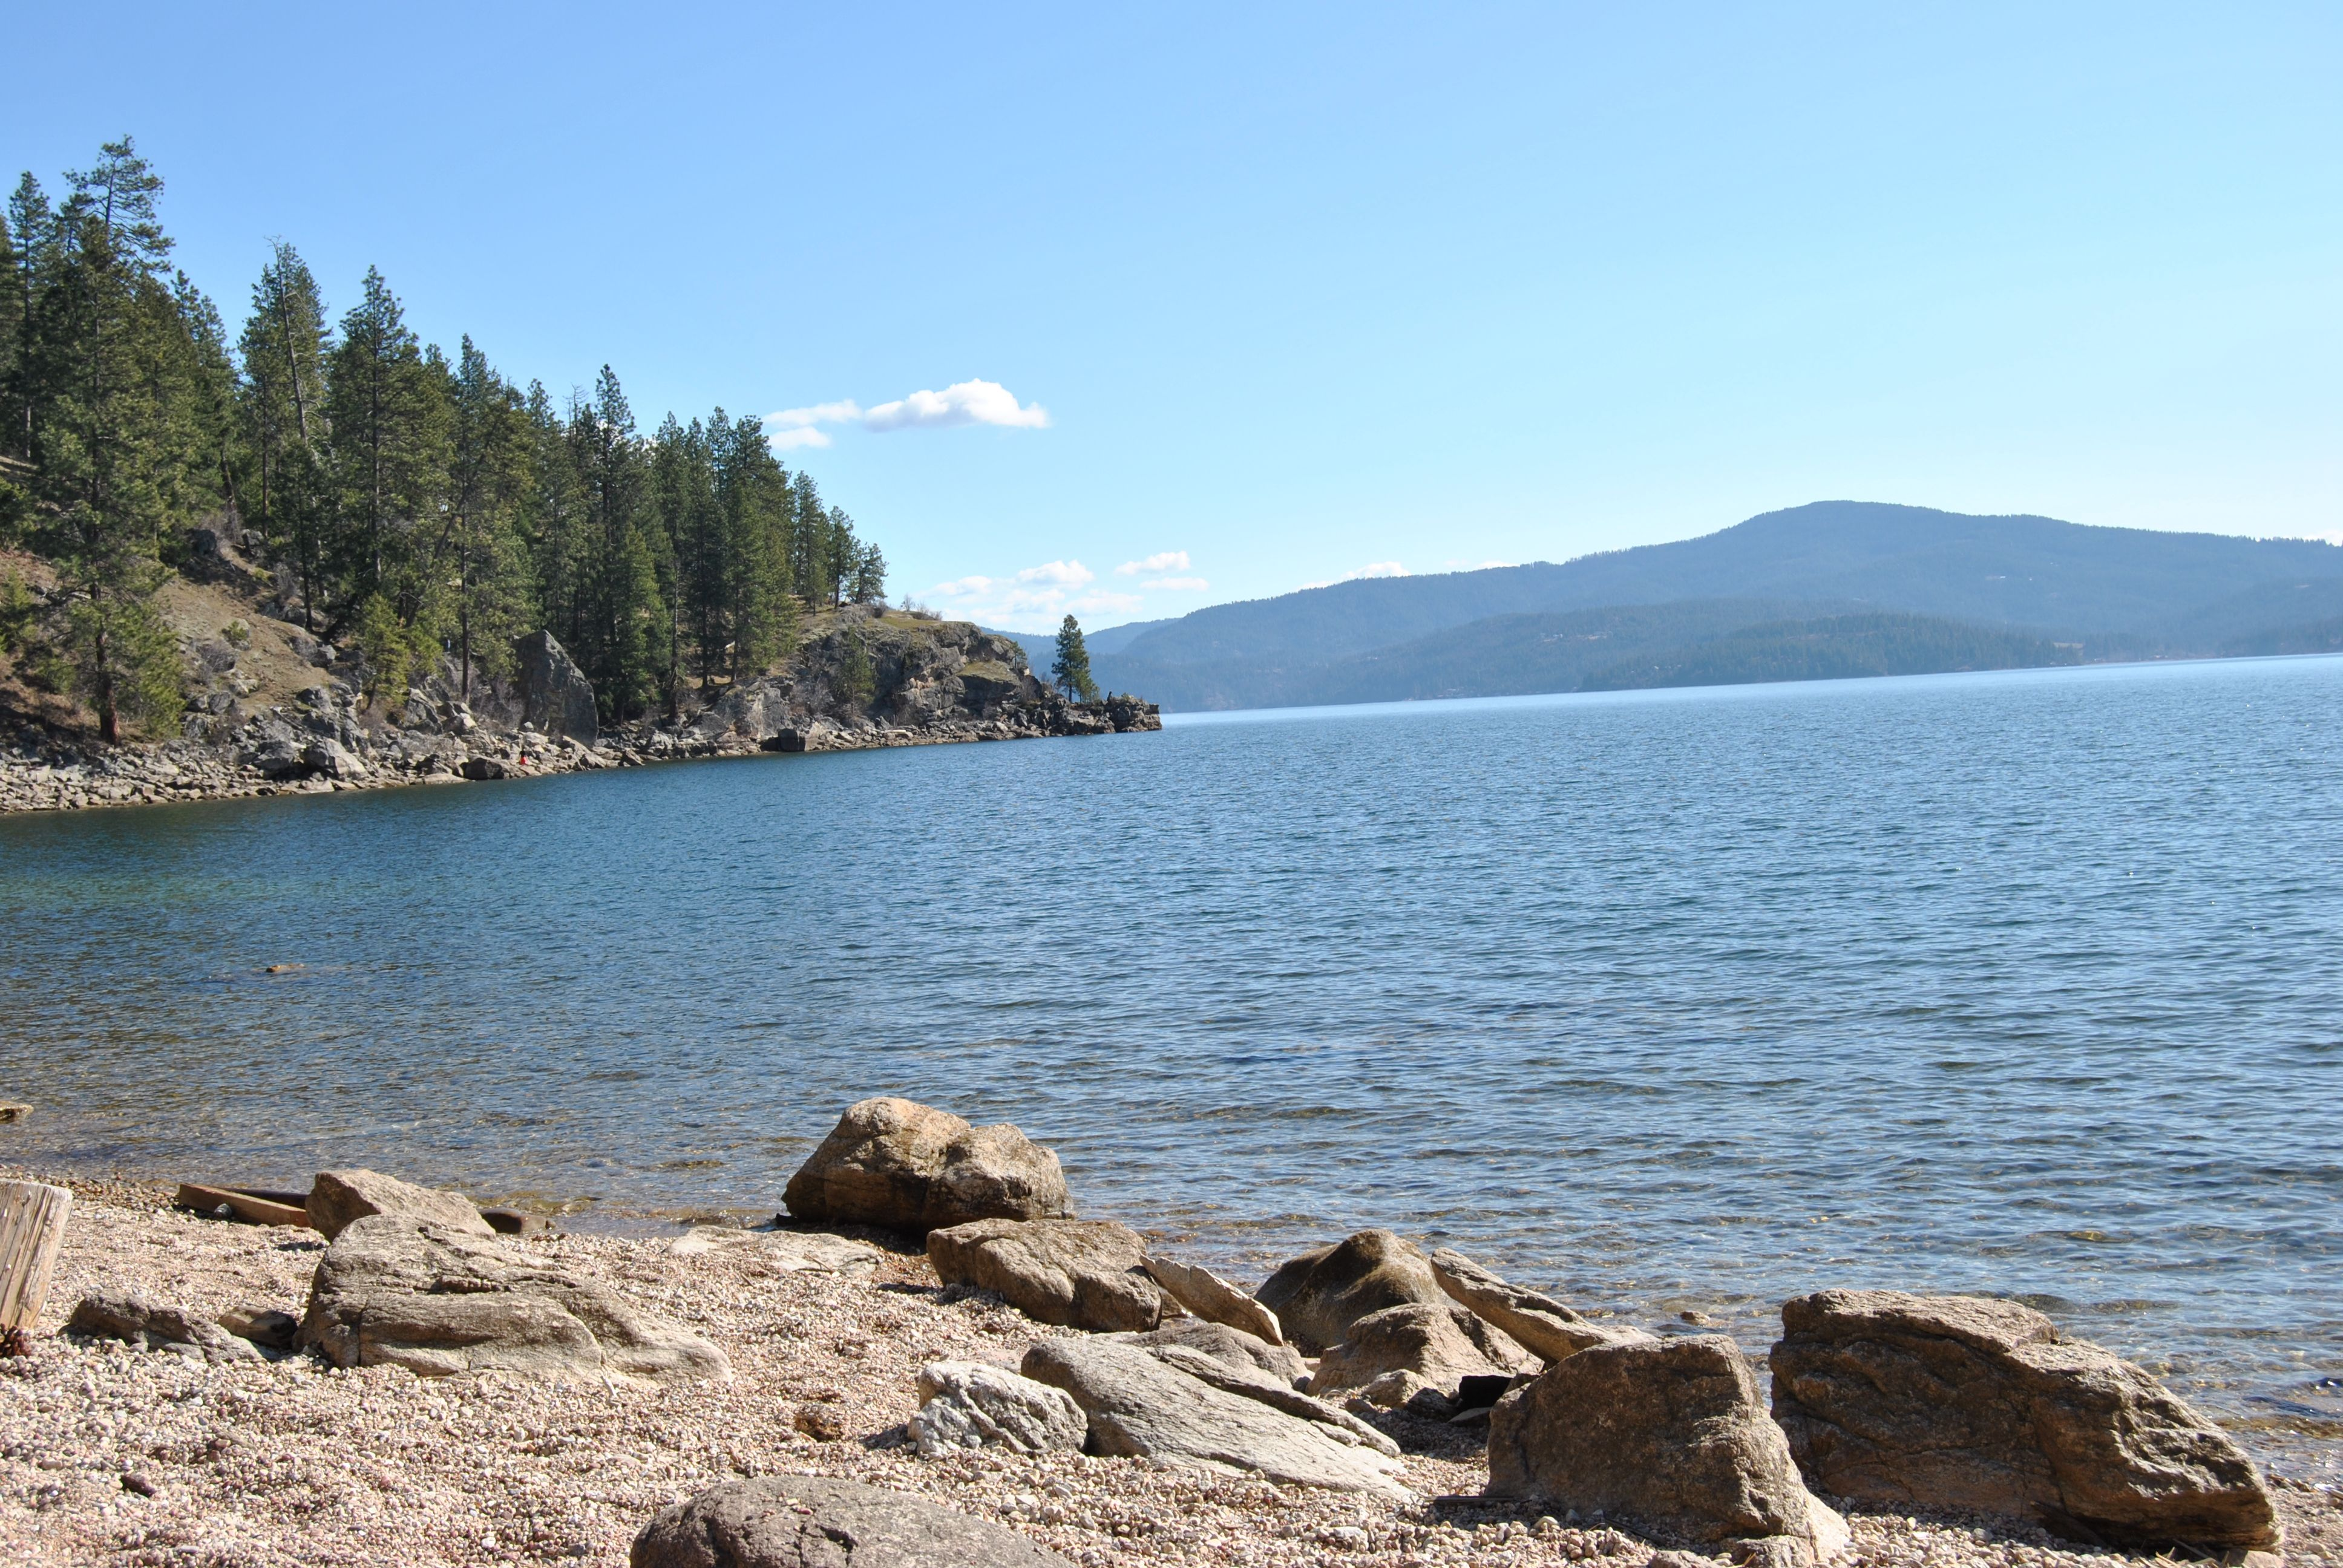 Tubbs Hill Beaches An Amazing 120 Acre Park In Downtown Coeur D Alene Idaho Natural Park Amazing Destinations Outdoor